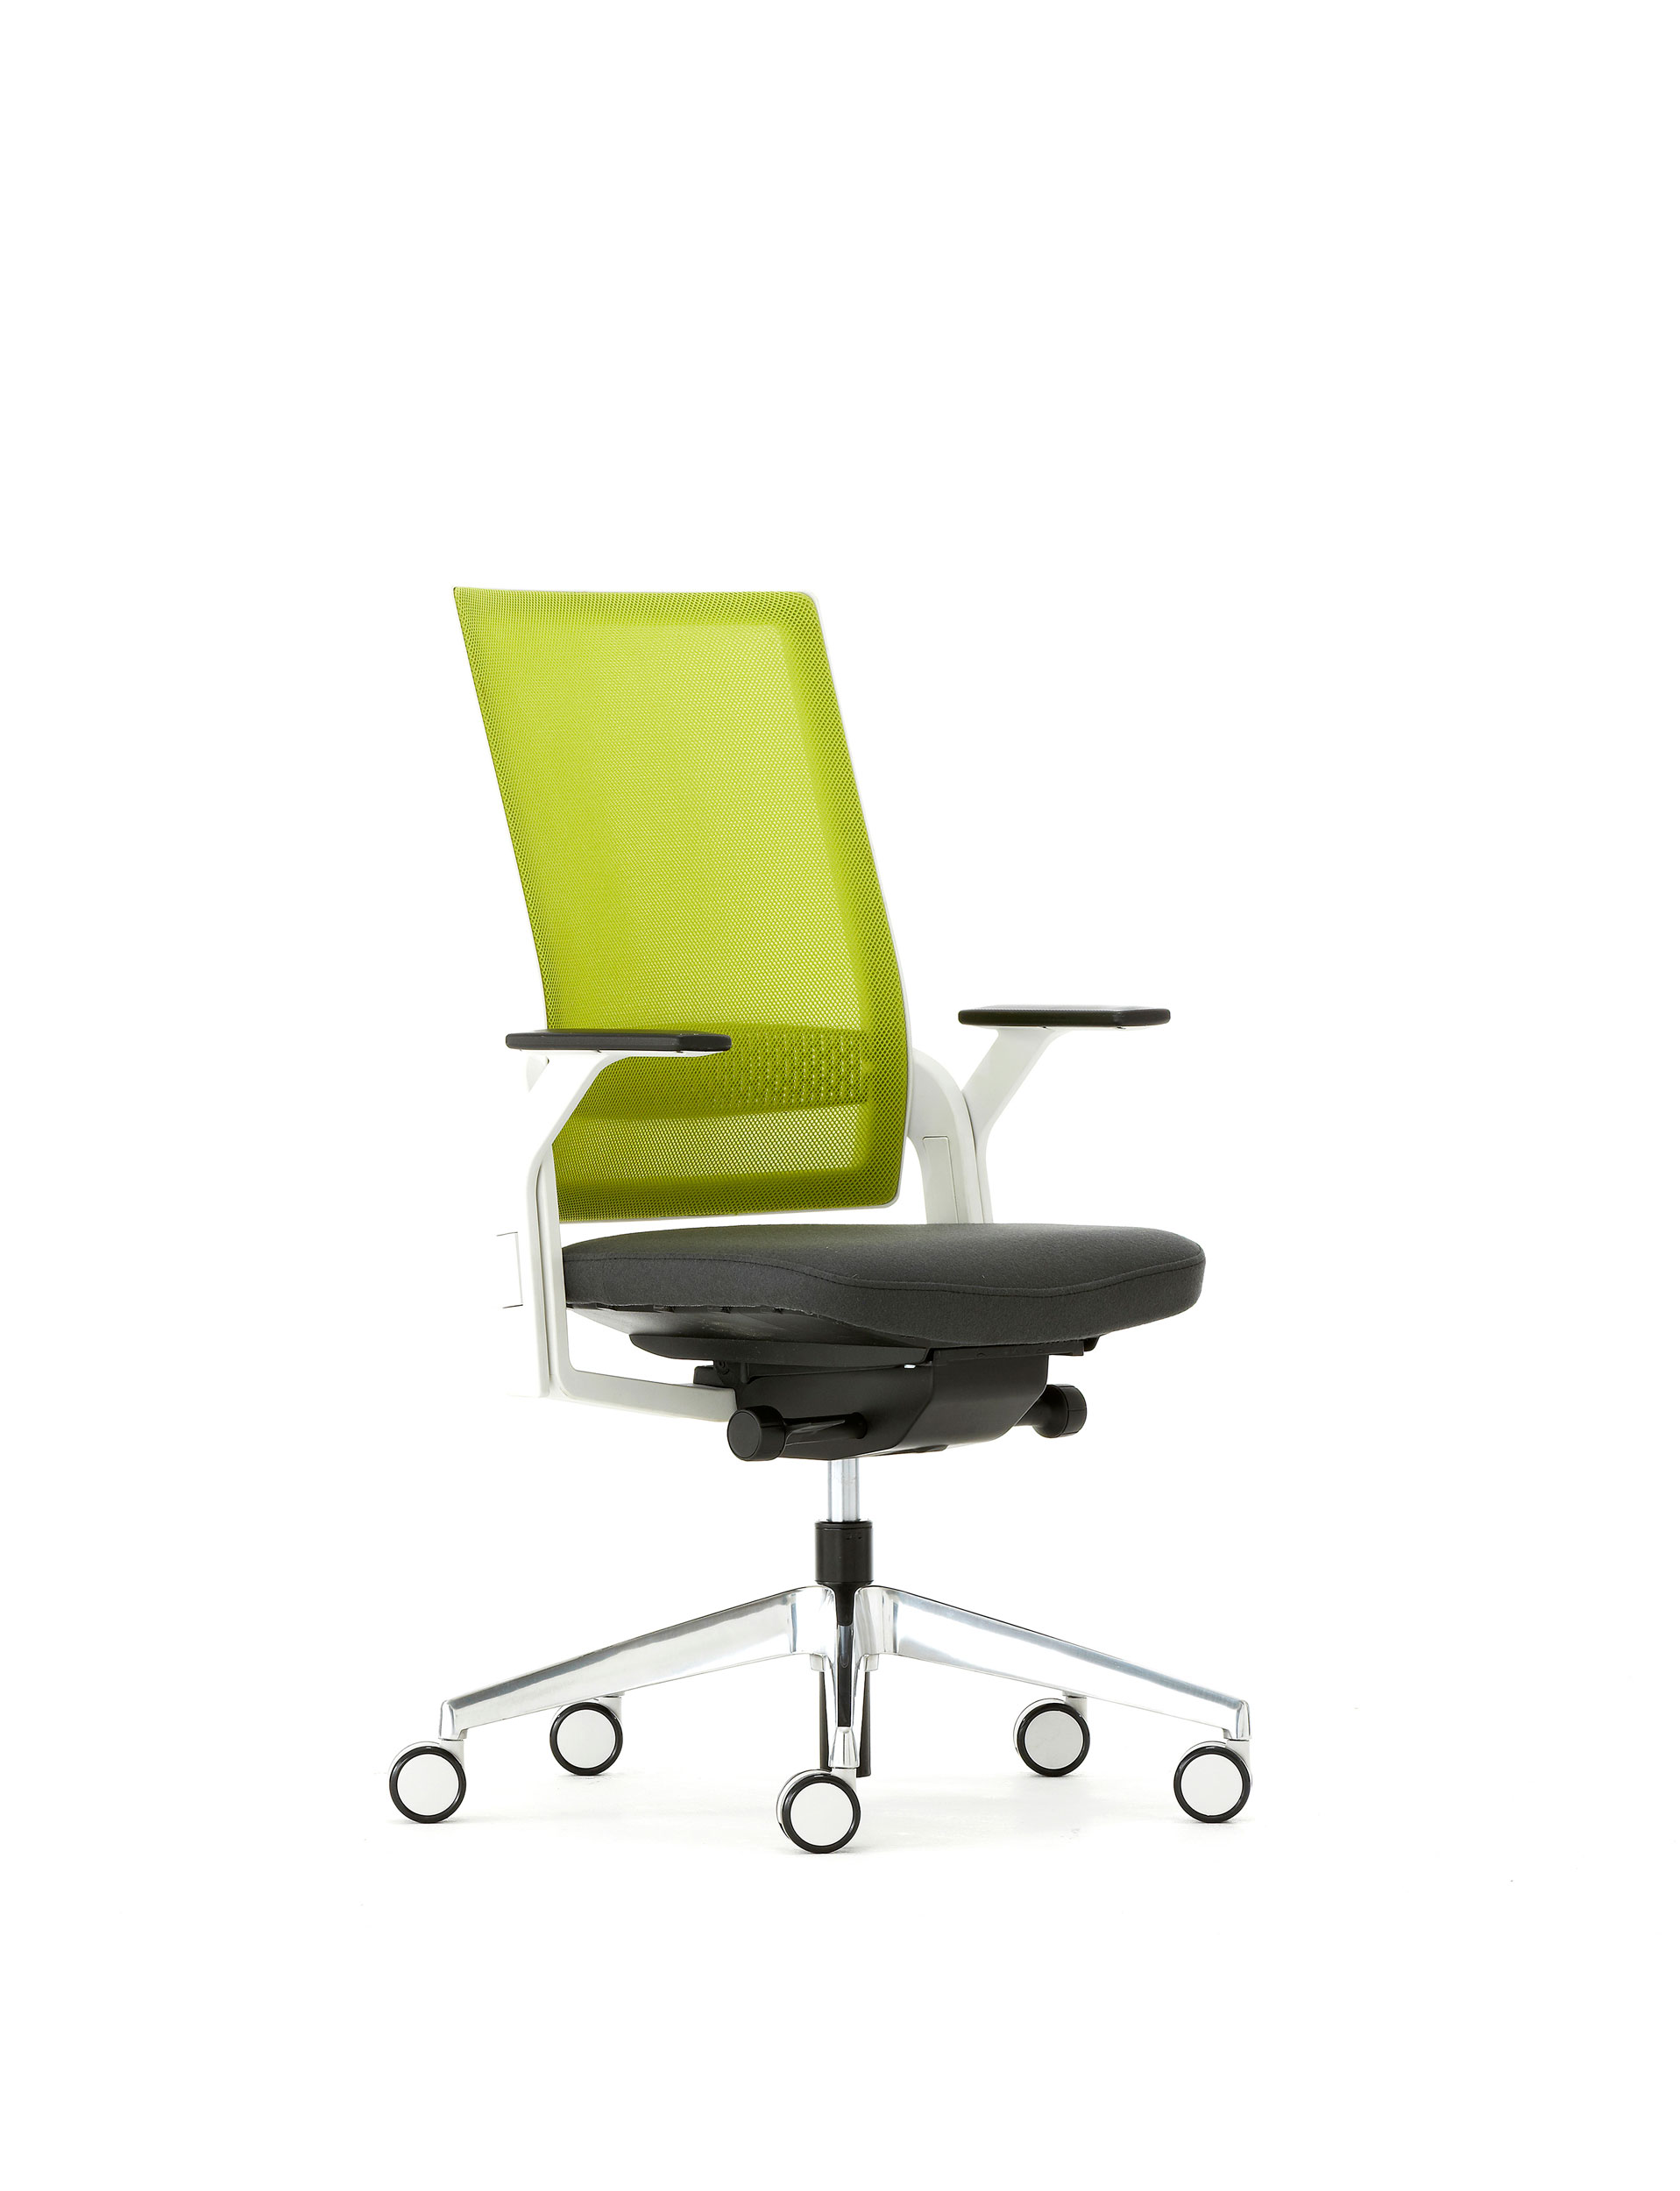 Green Computer Chair Green Lime White Stylish Desk Chair Ambience Doré